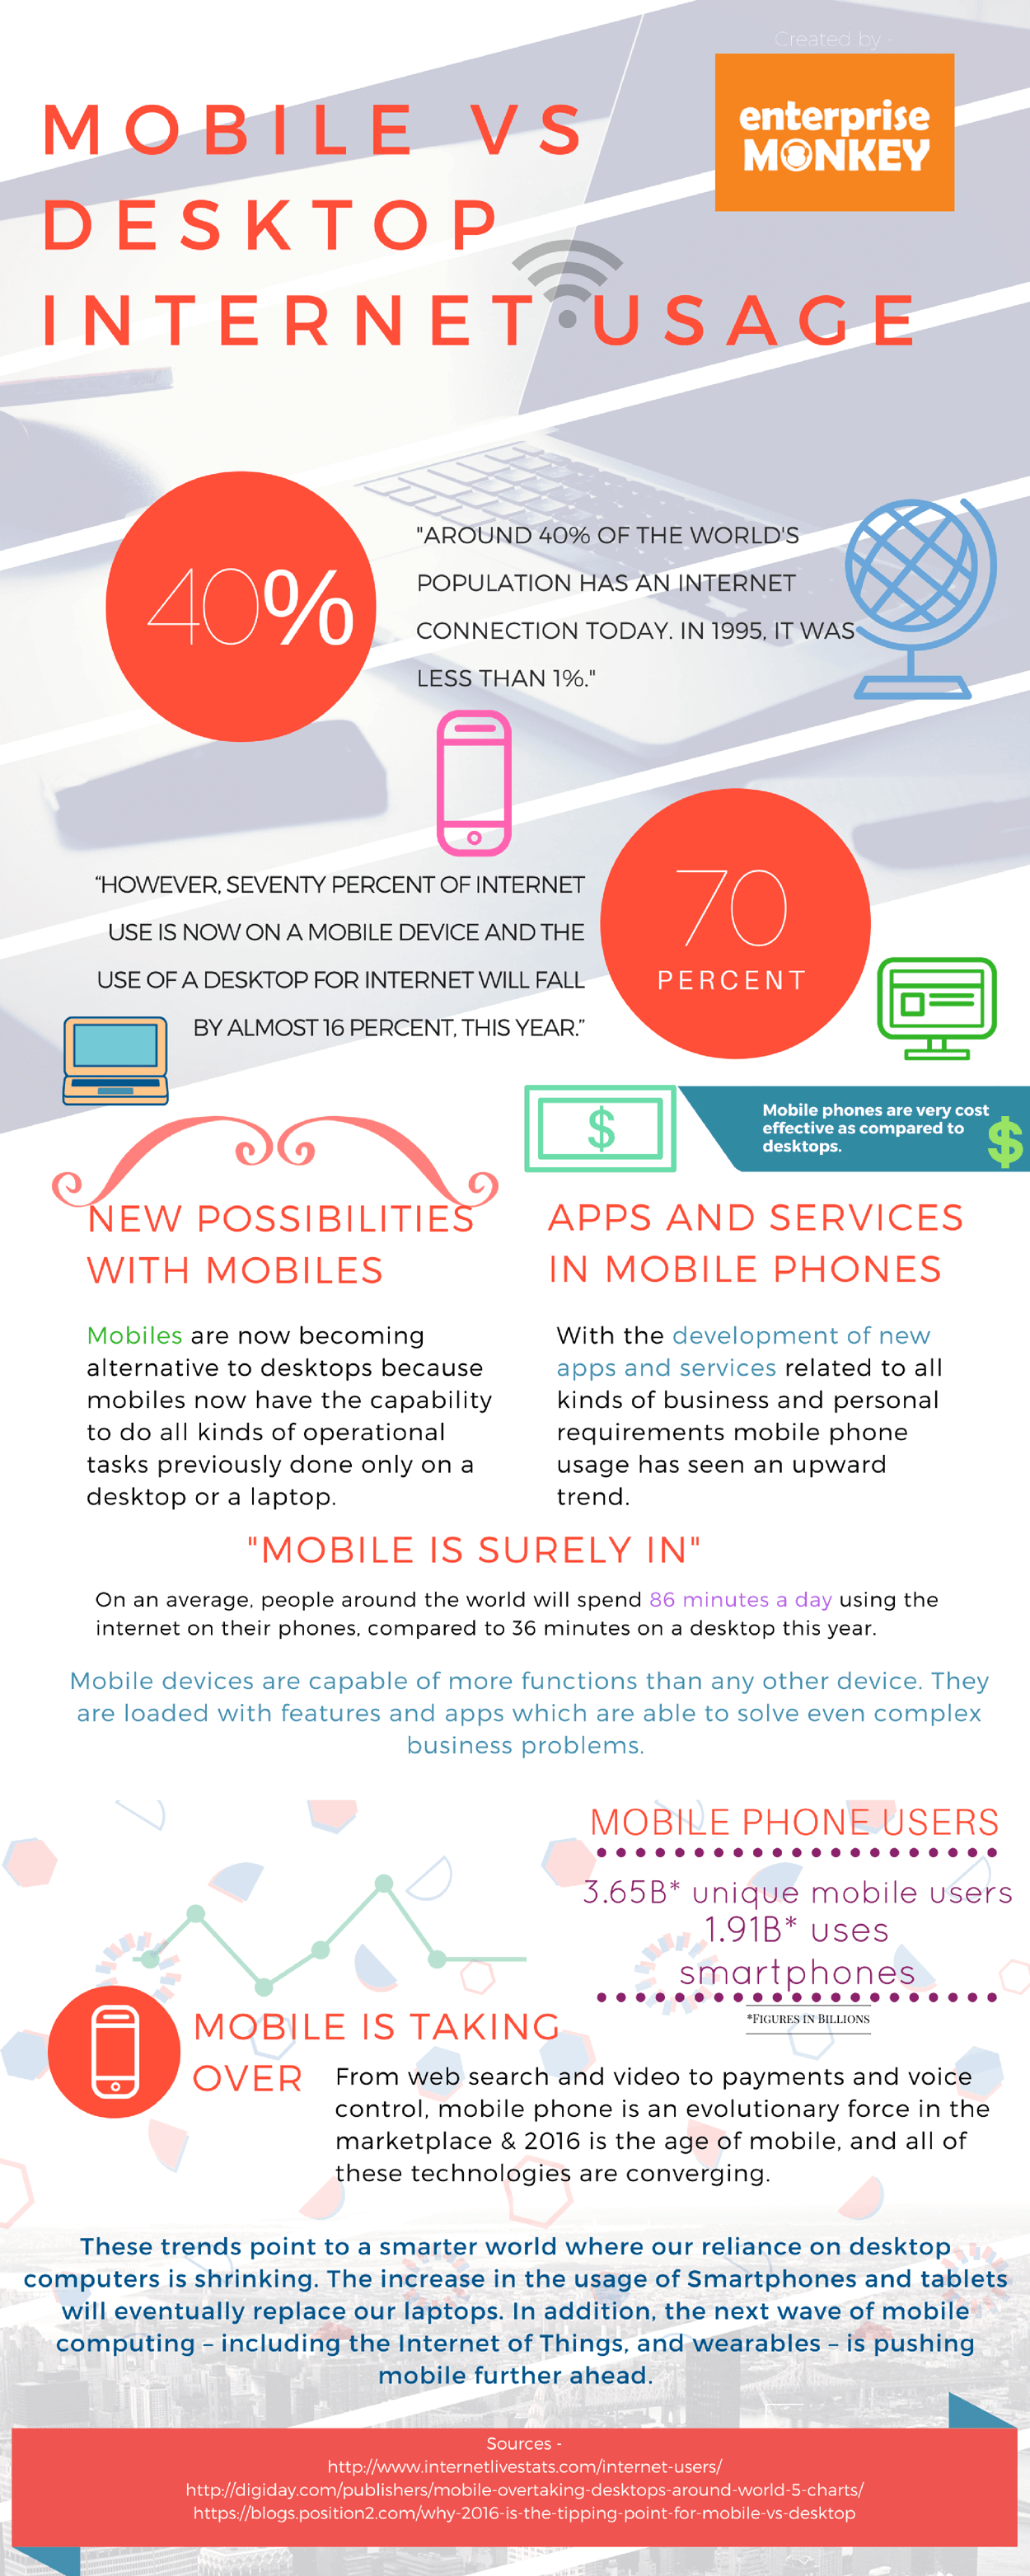 mobile-vs-desktop-internet-usage-infographic-plaza